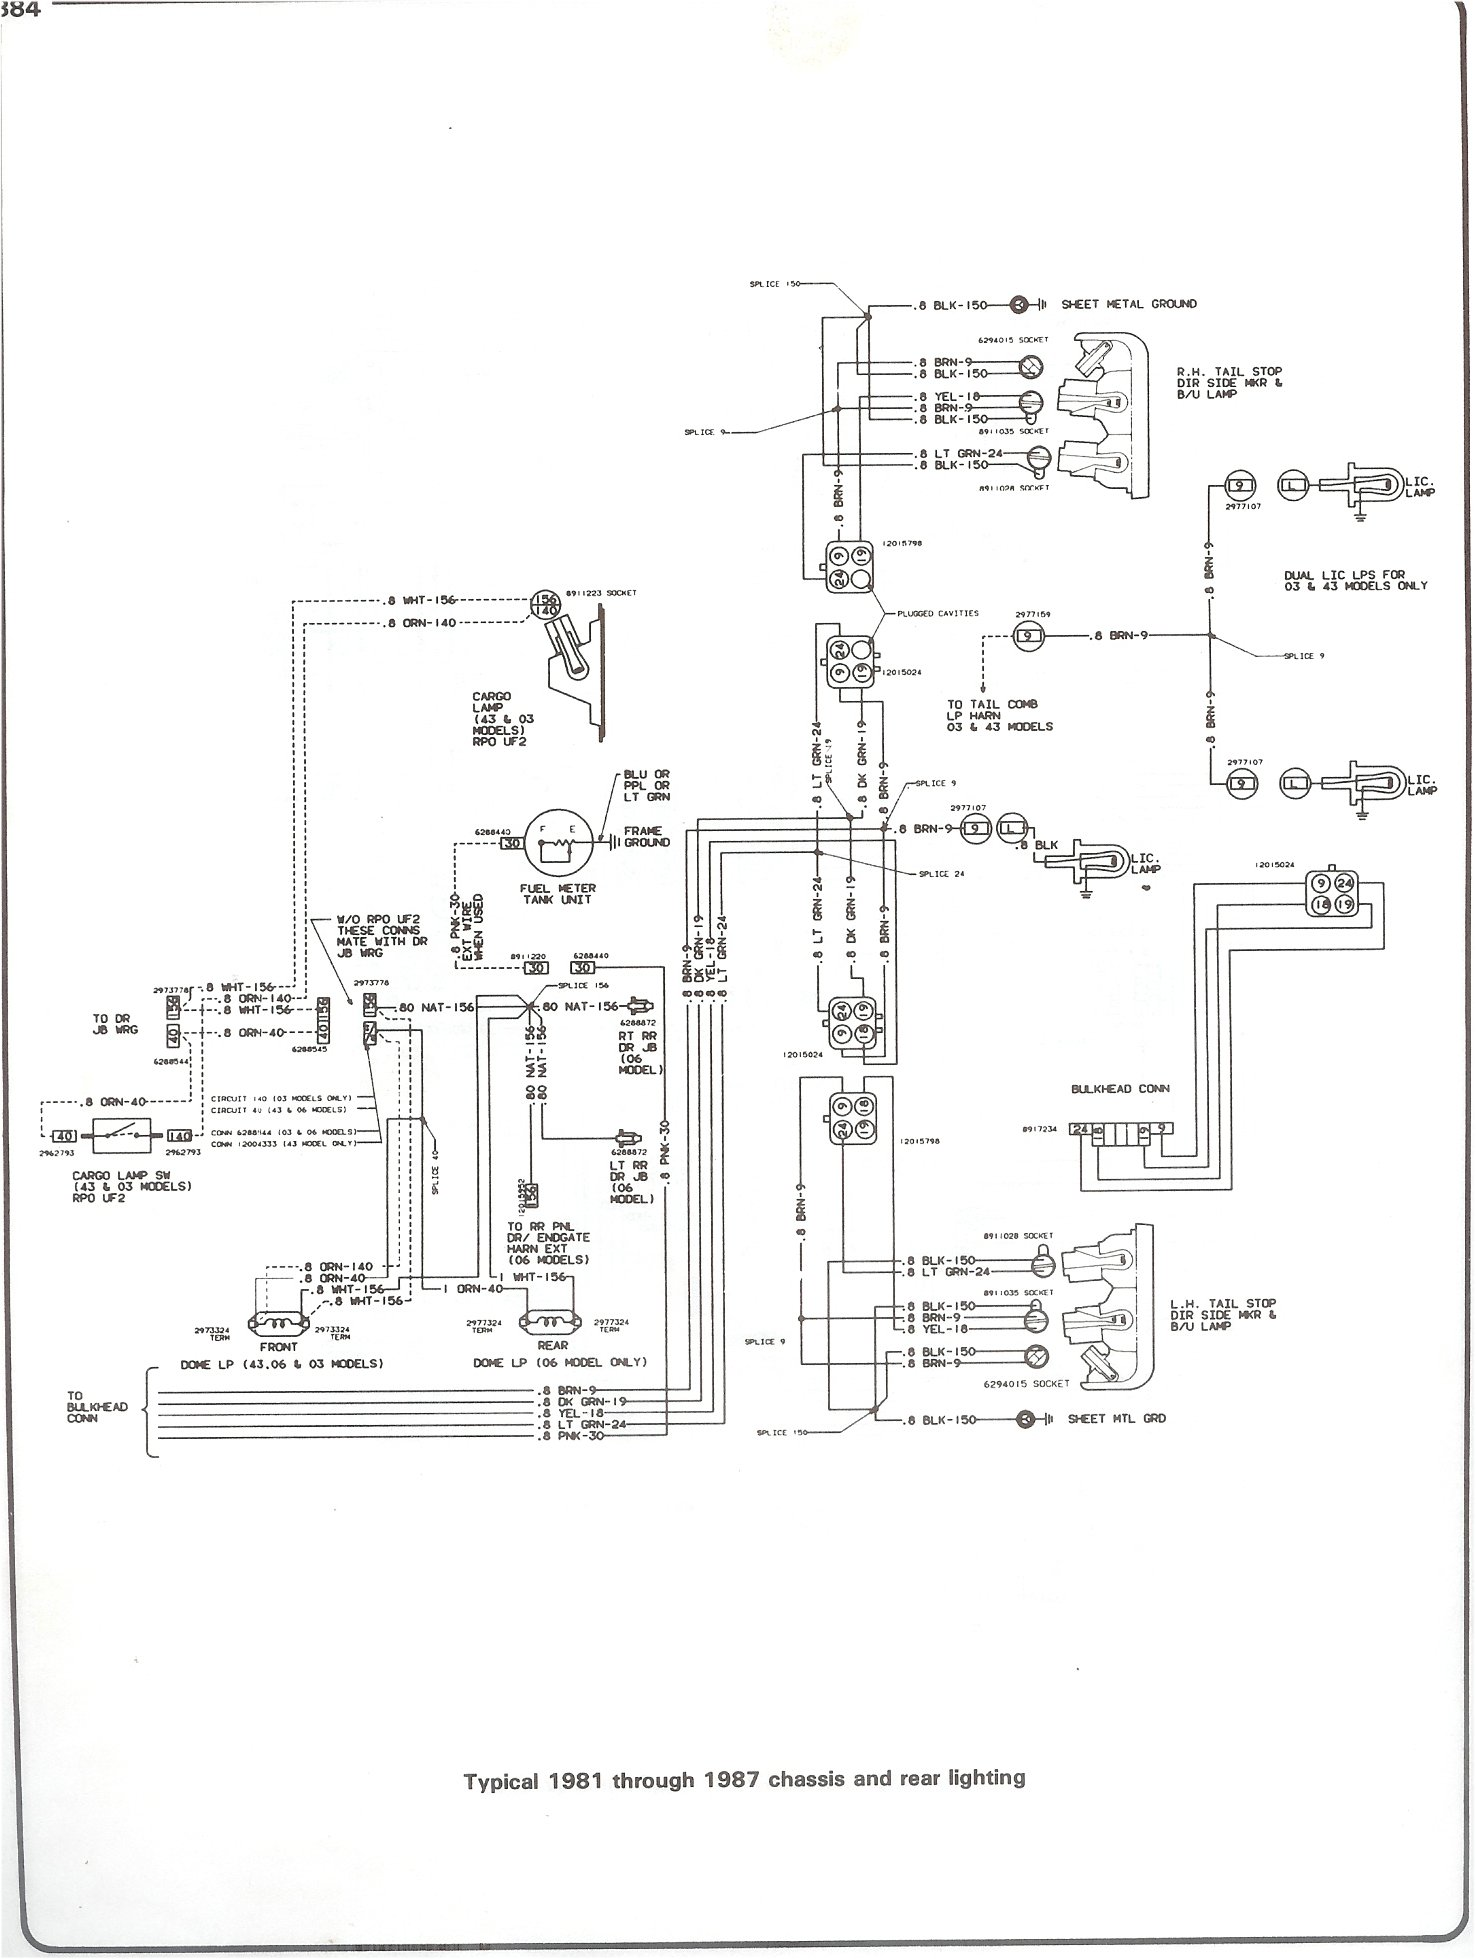 hight resolution of ignition switch wiring diagram for 91 chevy 1500 pickup wiring library ignition switch wiring diagram for 91 chevy 1500 pickup